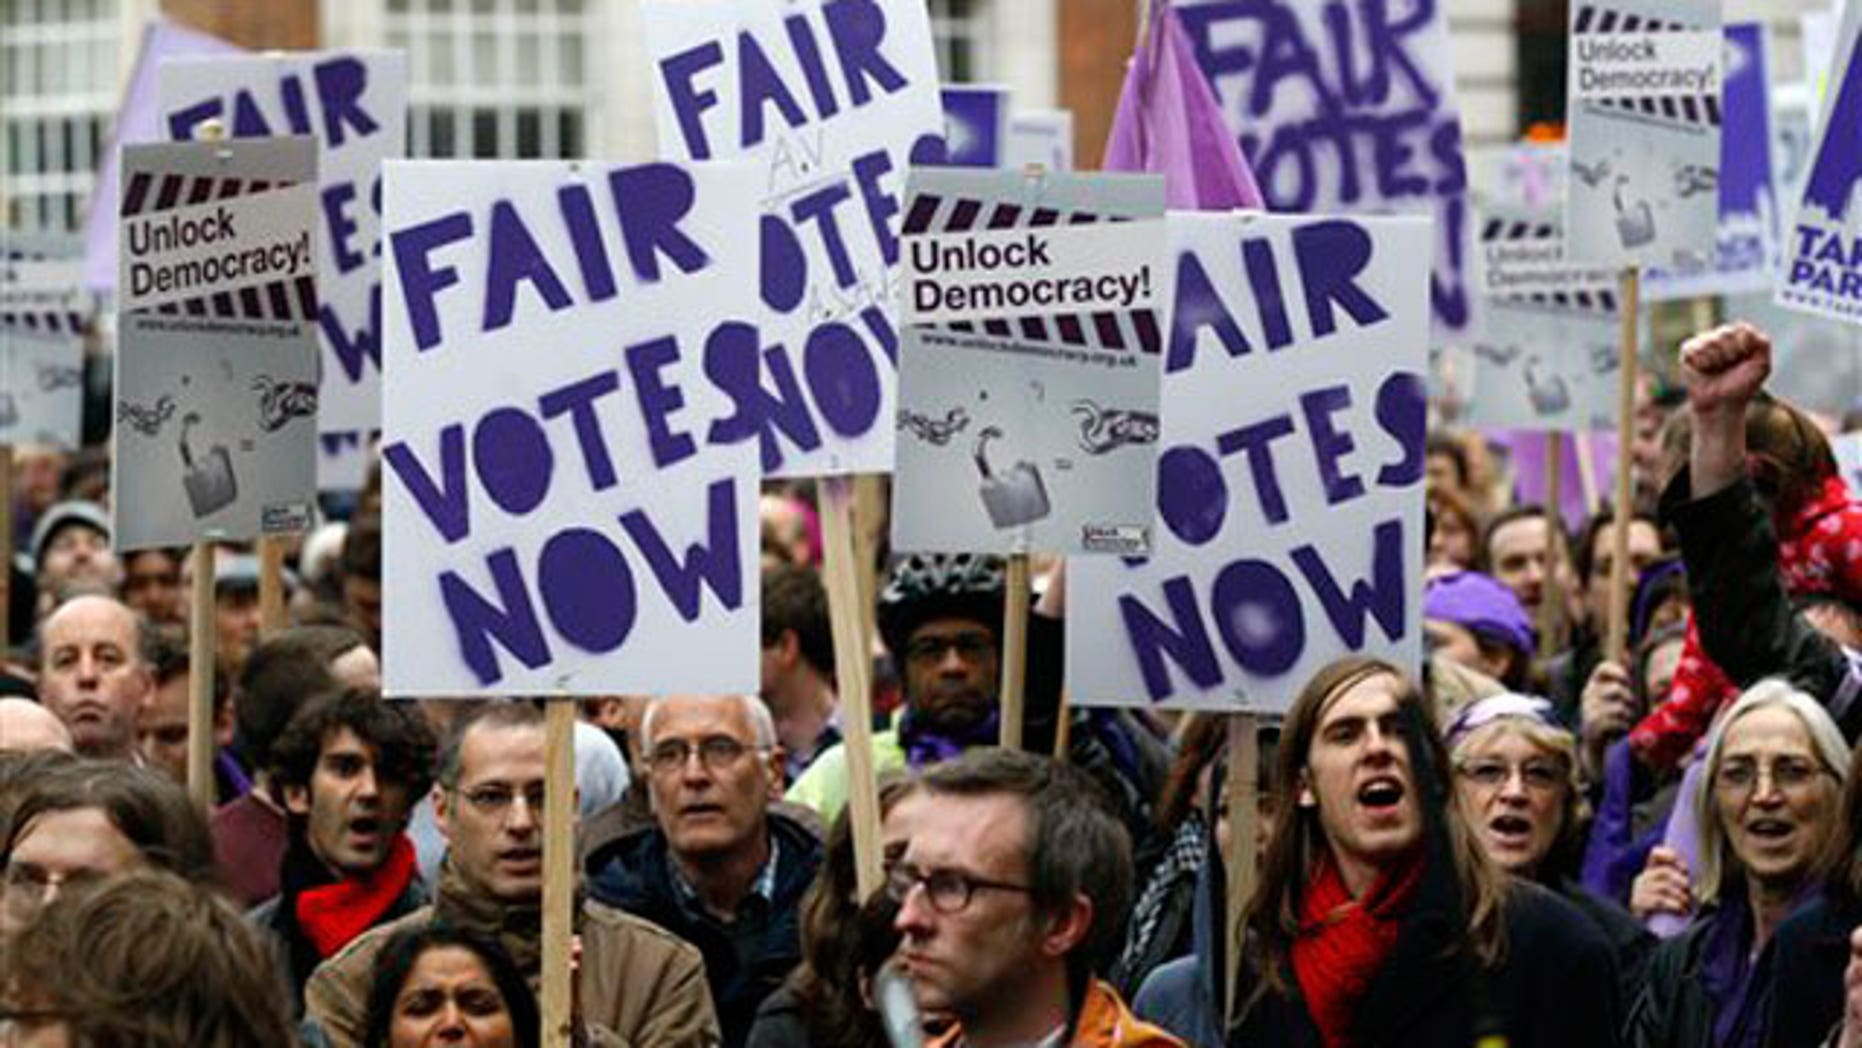 May 8: Protesters calling for a fair electorate system demonstrate outside the Local Government Association in London.